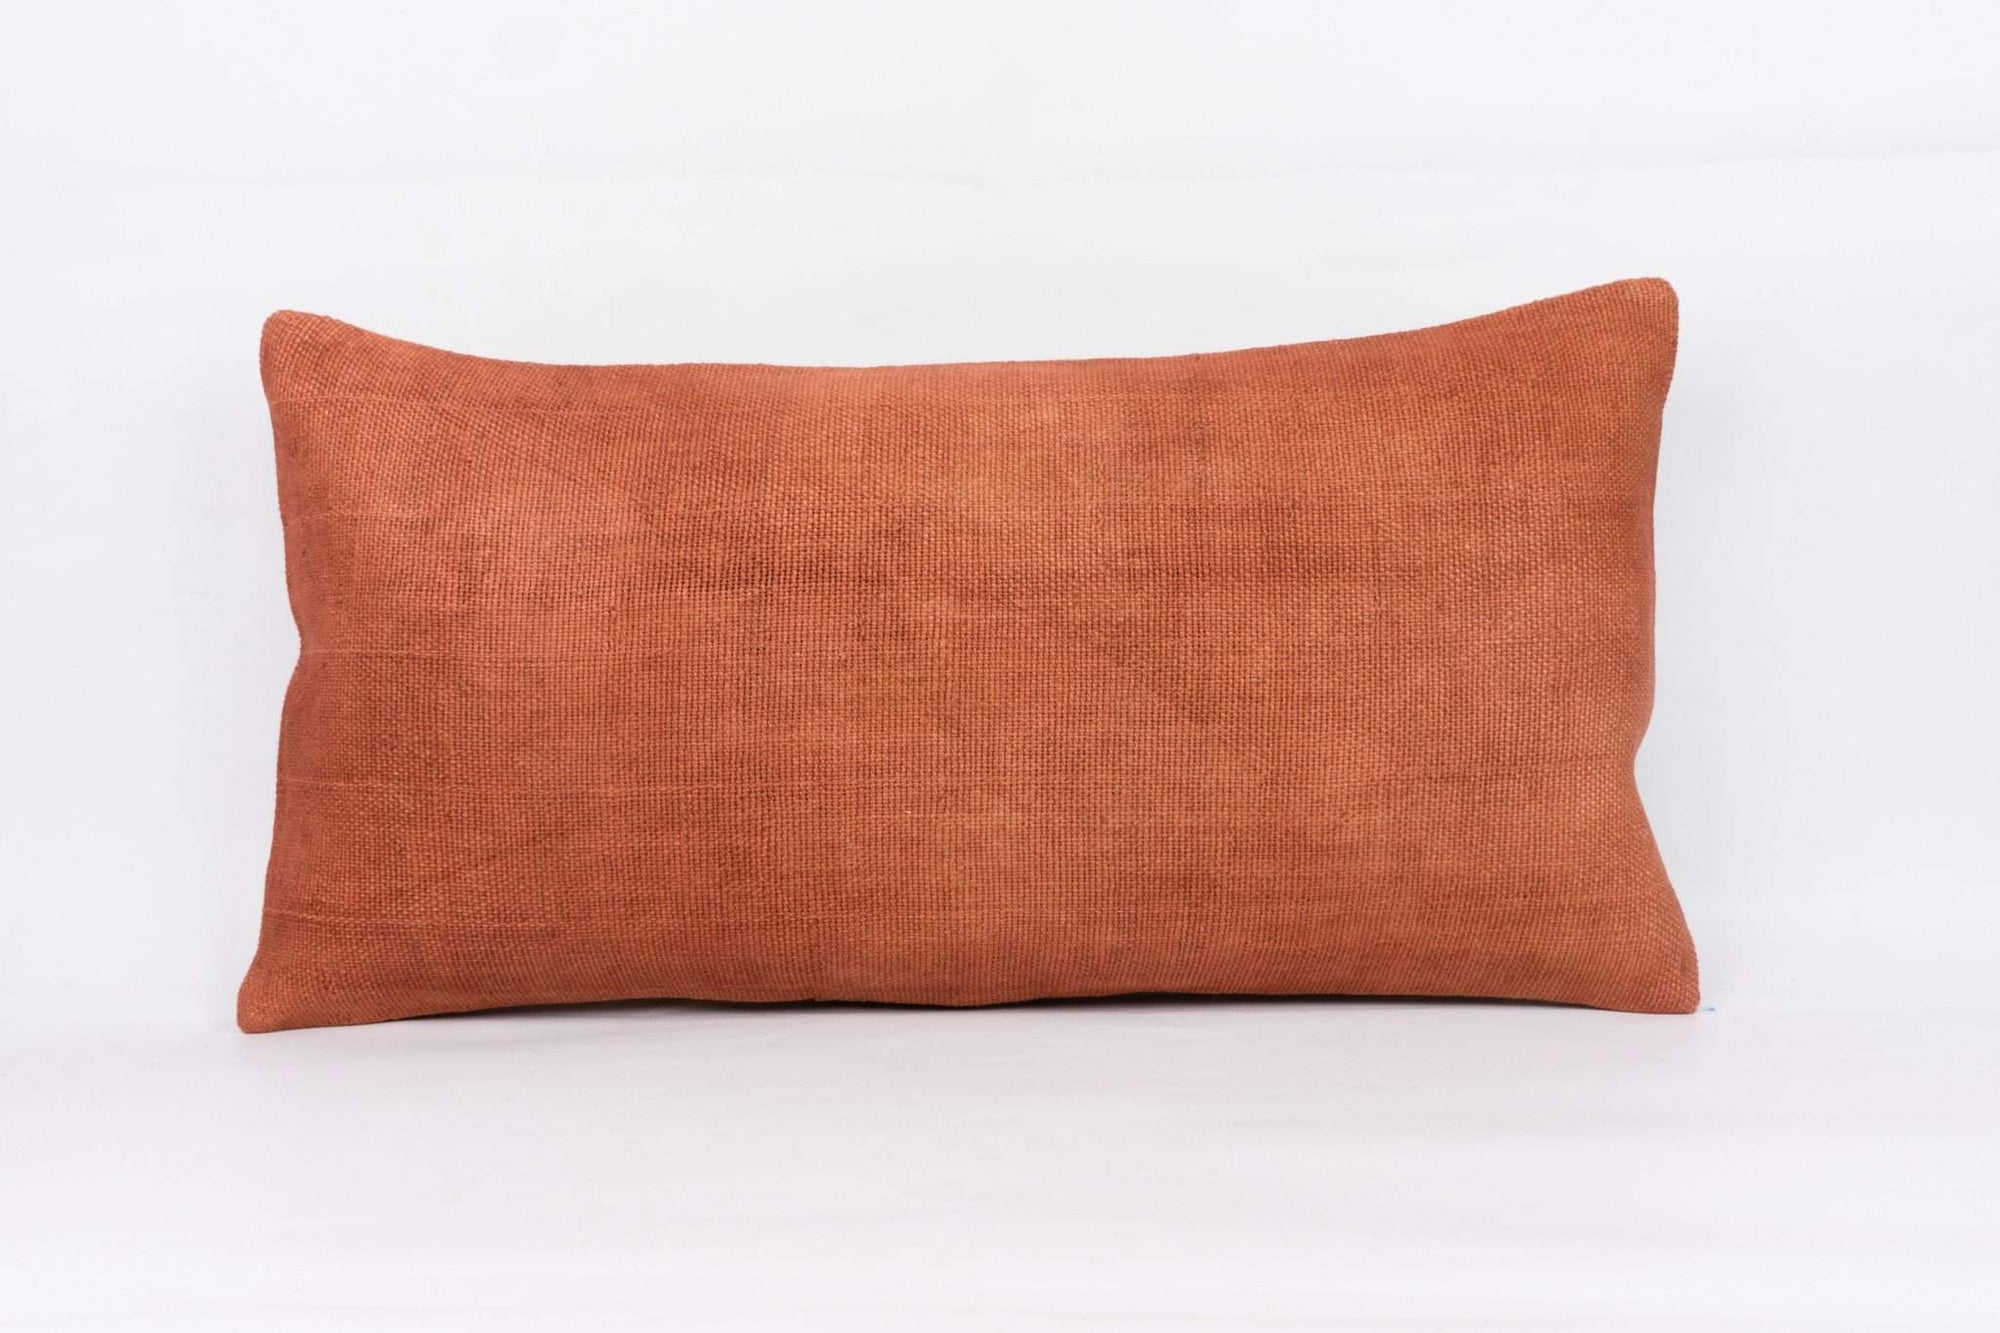 Plain Brown Kilim Pillow Cover 12x24 4181